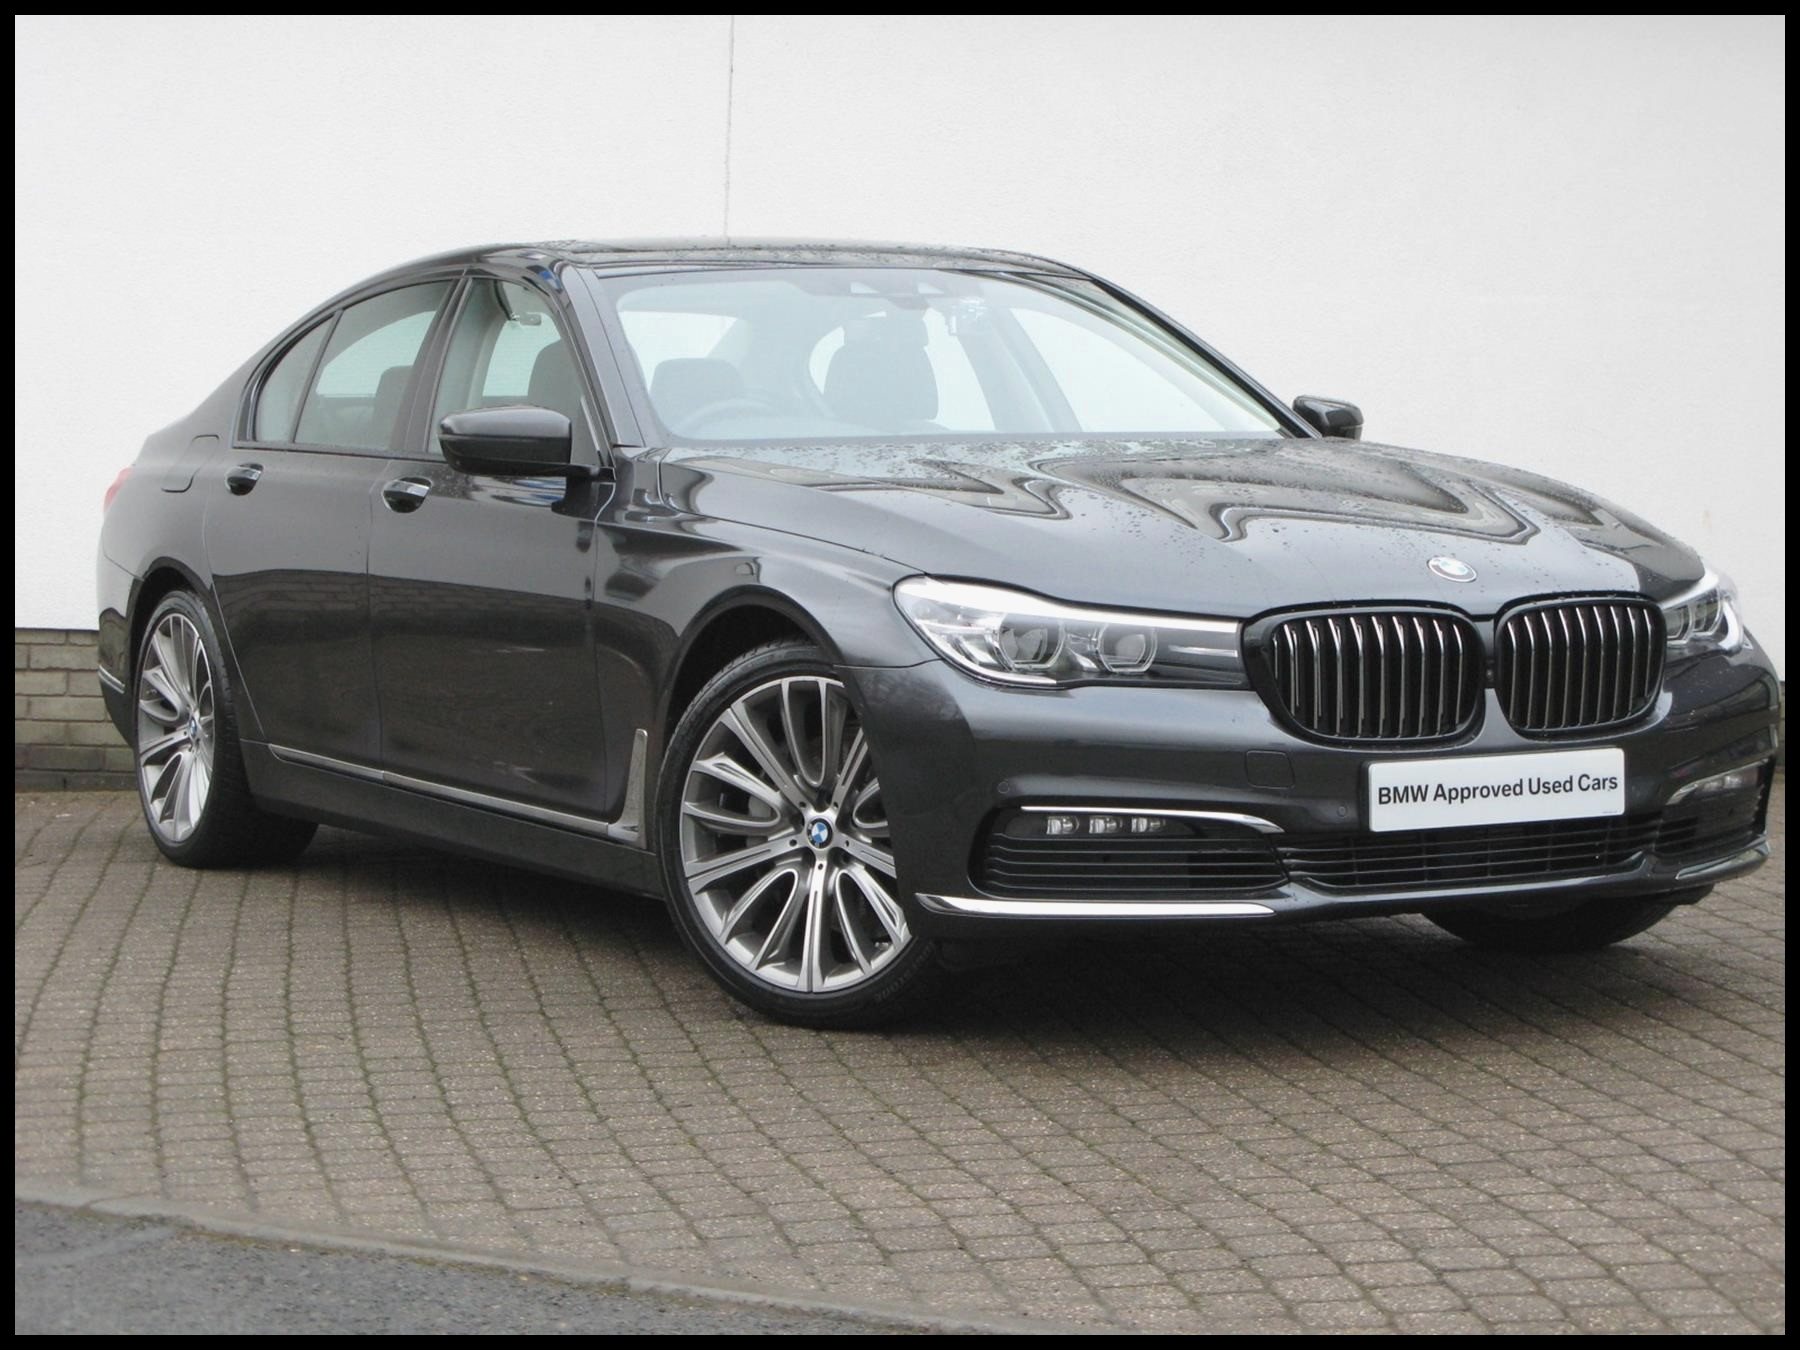 Bmw 750i Msrp Lovely Awesome Used 2017 Bmw 7 Series G11 740d Xdrive Saloon B57 3